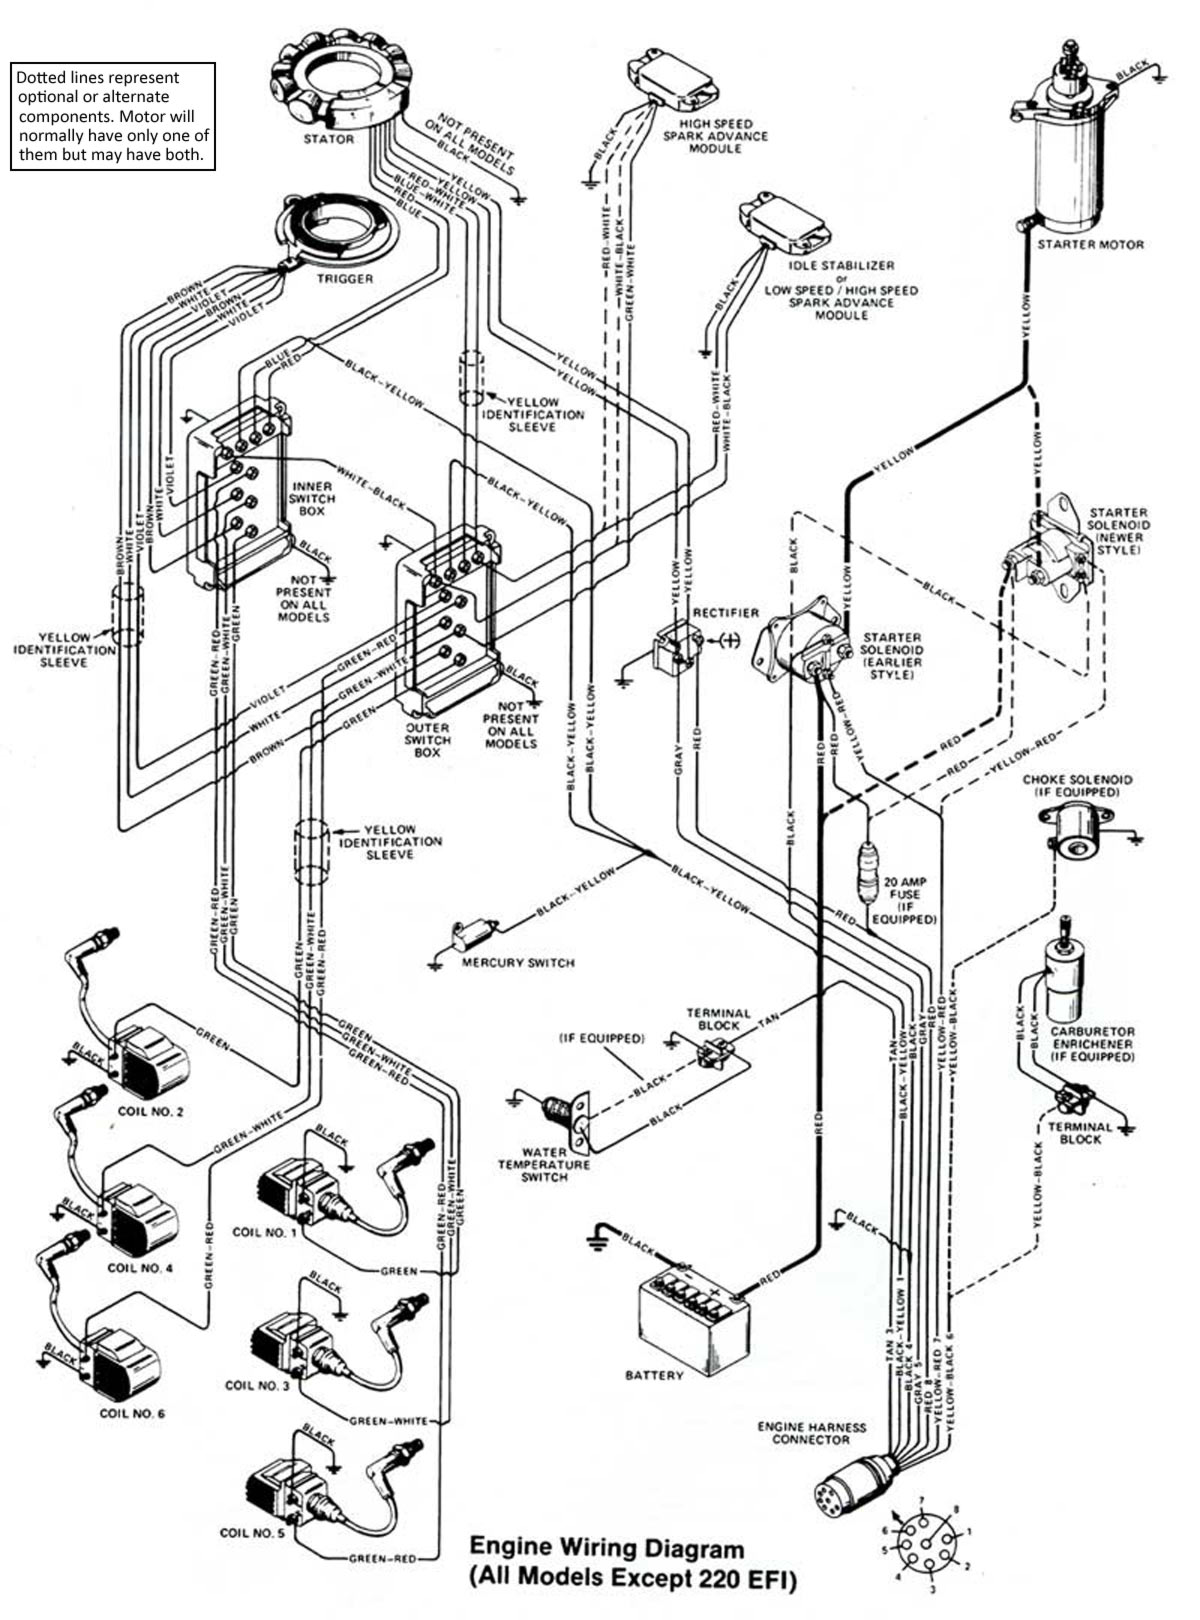 35 hp outboard wiring diagram 35 get free image about wiring diagram